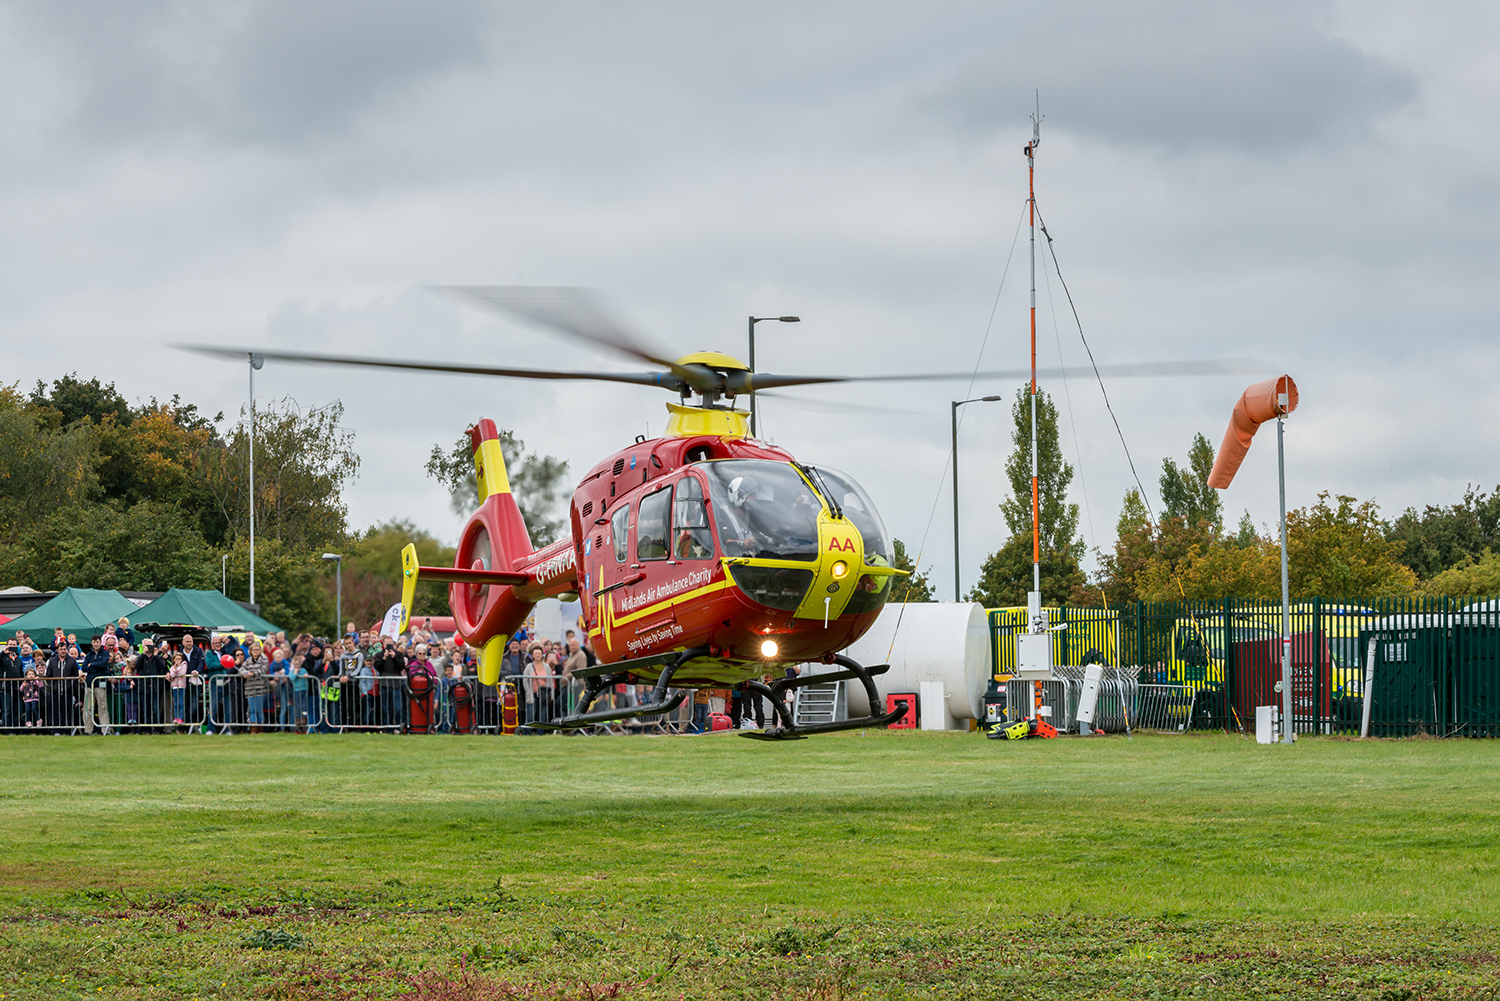 Find out about our air ambulance at open day